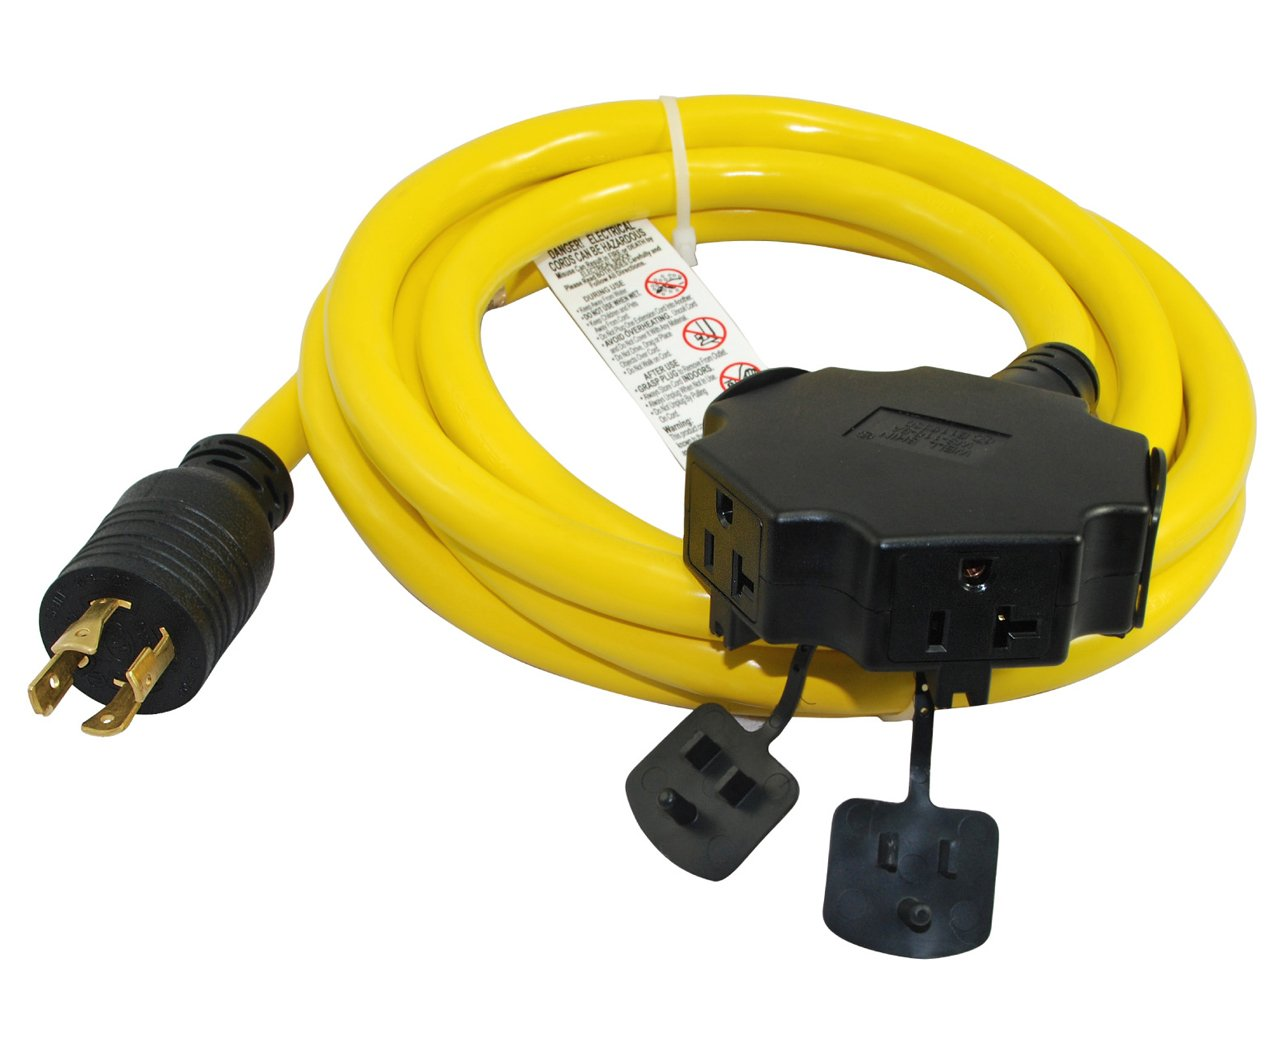 4 Wire Generator Plug Wiring For 30 Amp Diagrams 120 Diagram Conntek 20610 010 Power Cord 10 Foot Volt Home